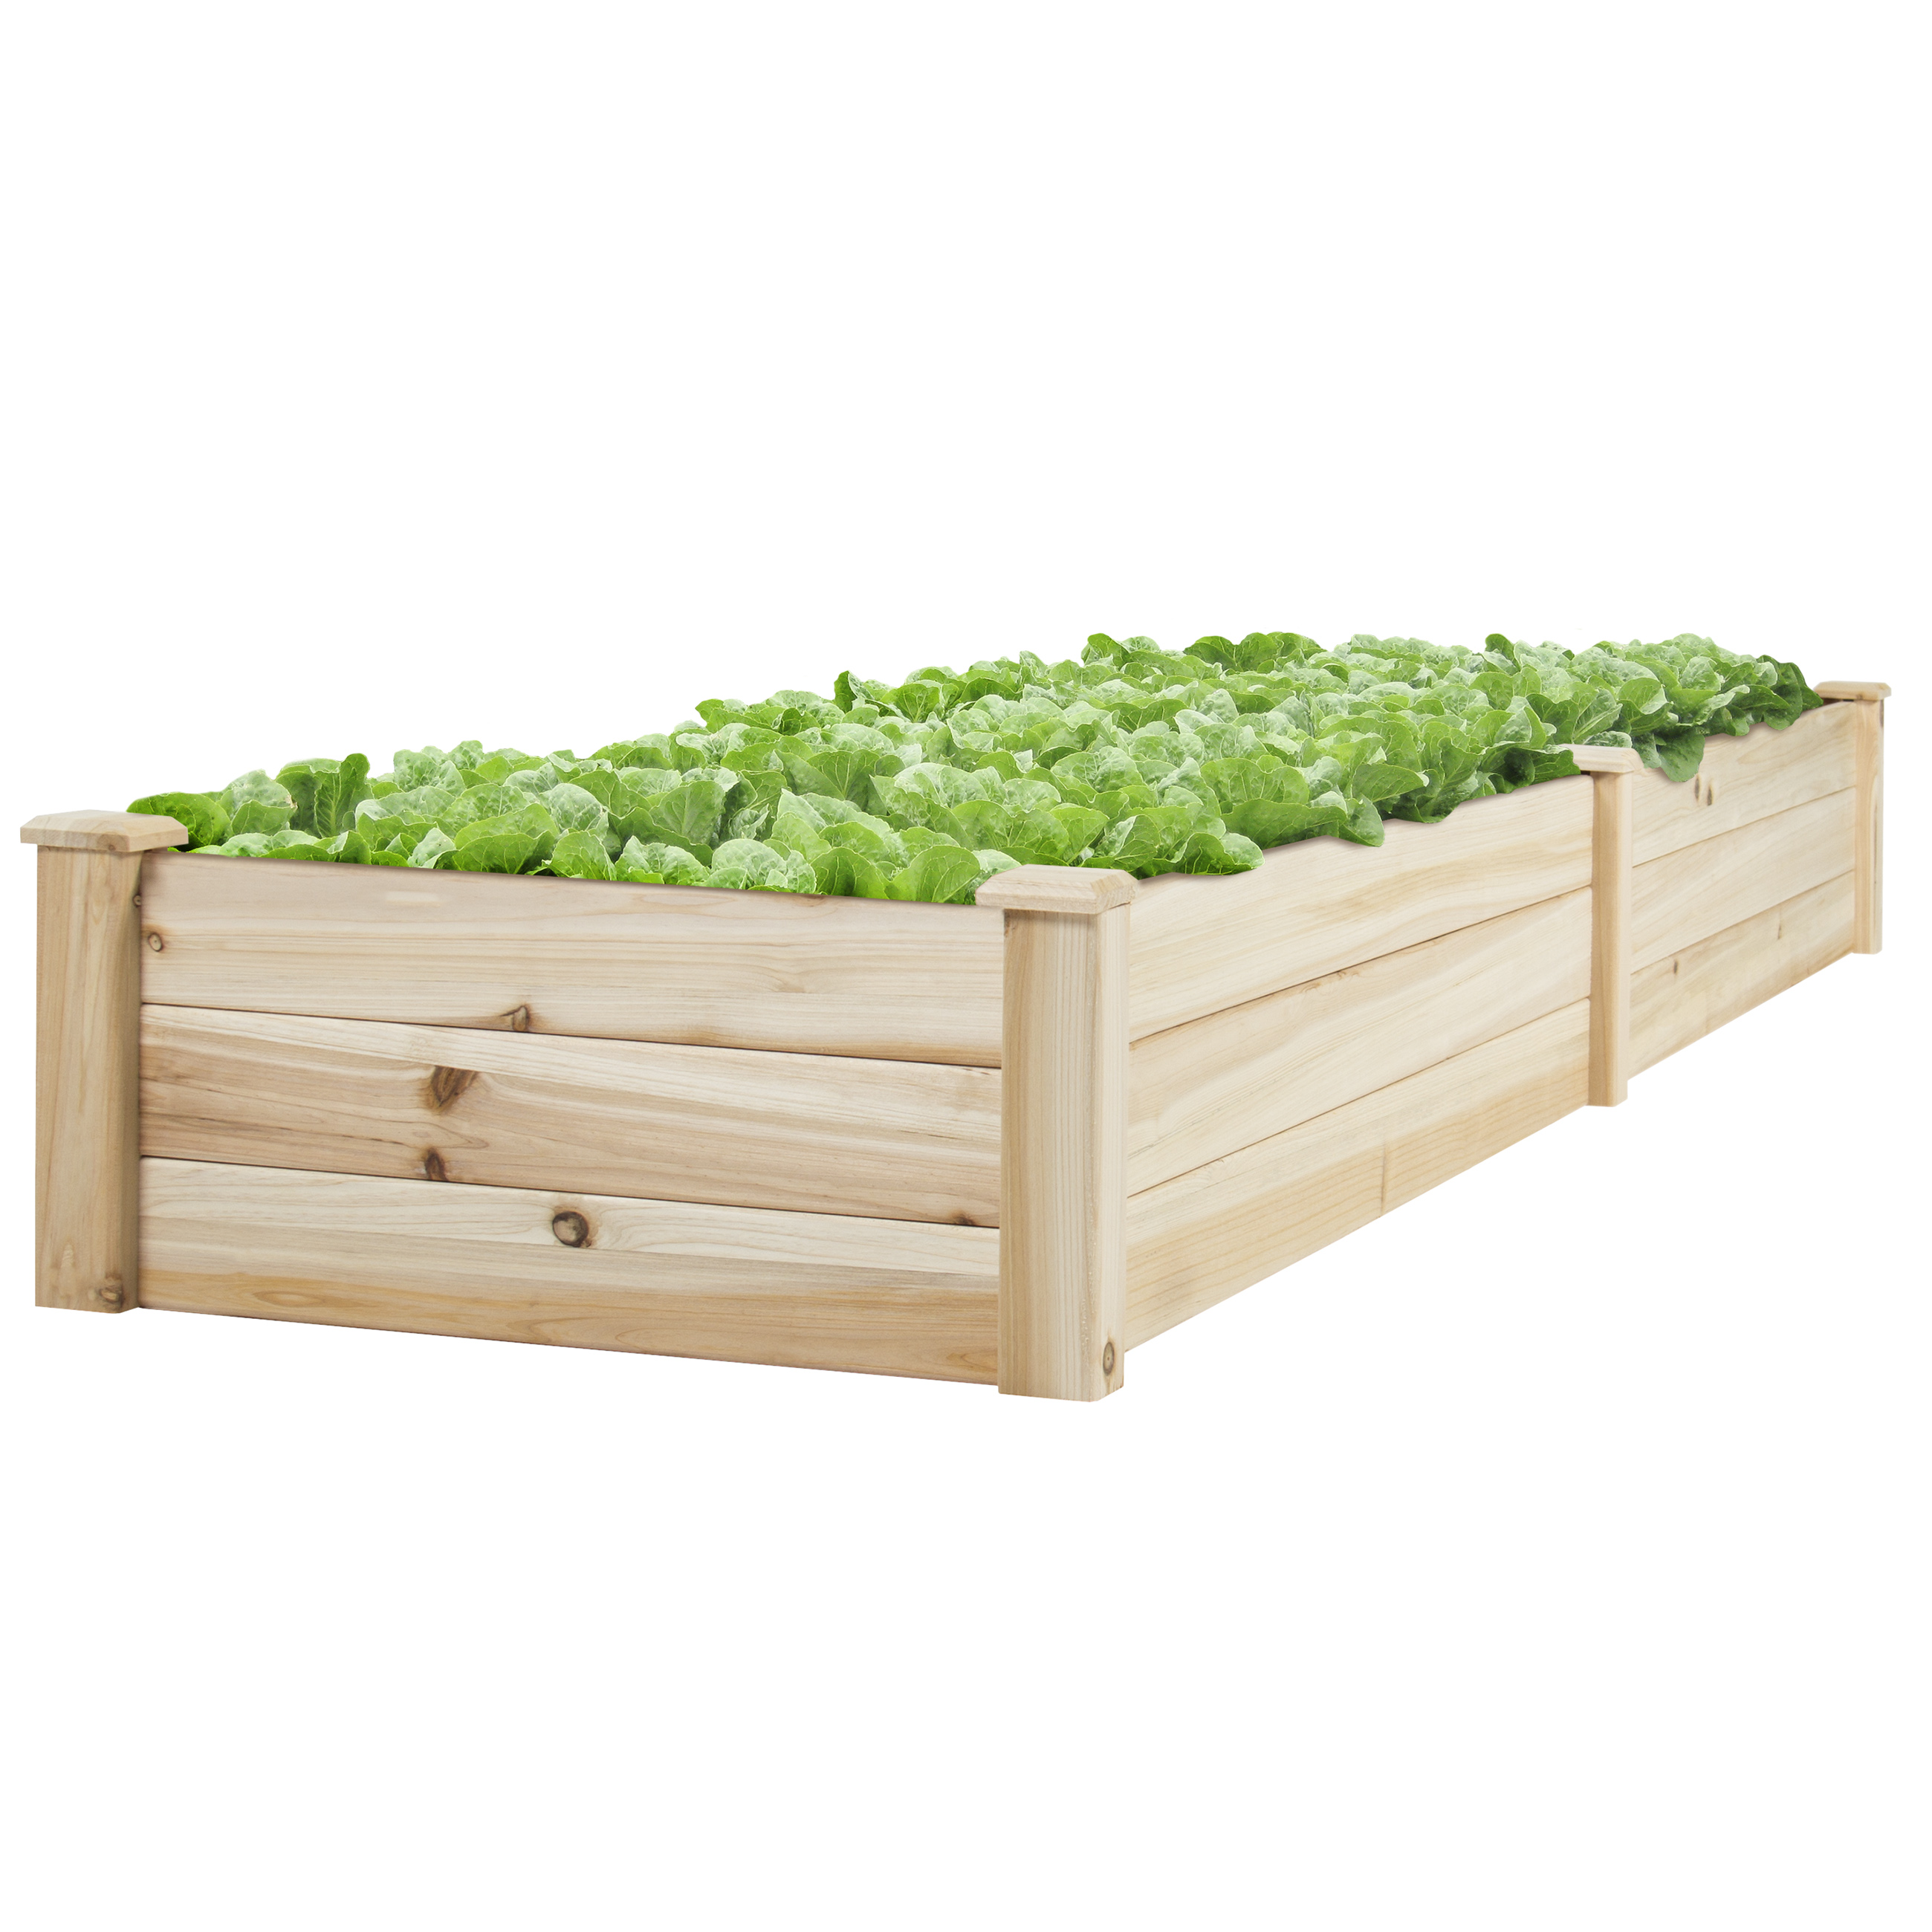 Best Choice Products BCP Wooden Raised Vegetable Garden Bed Patio Backyard Grow Flowers Elevated Planter